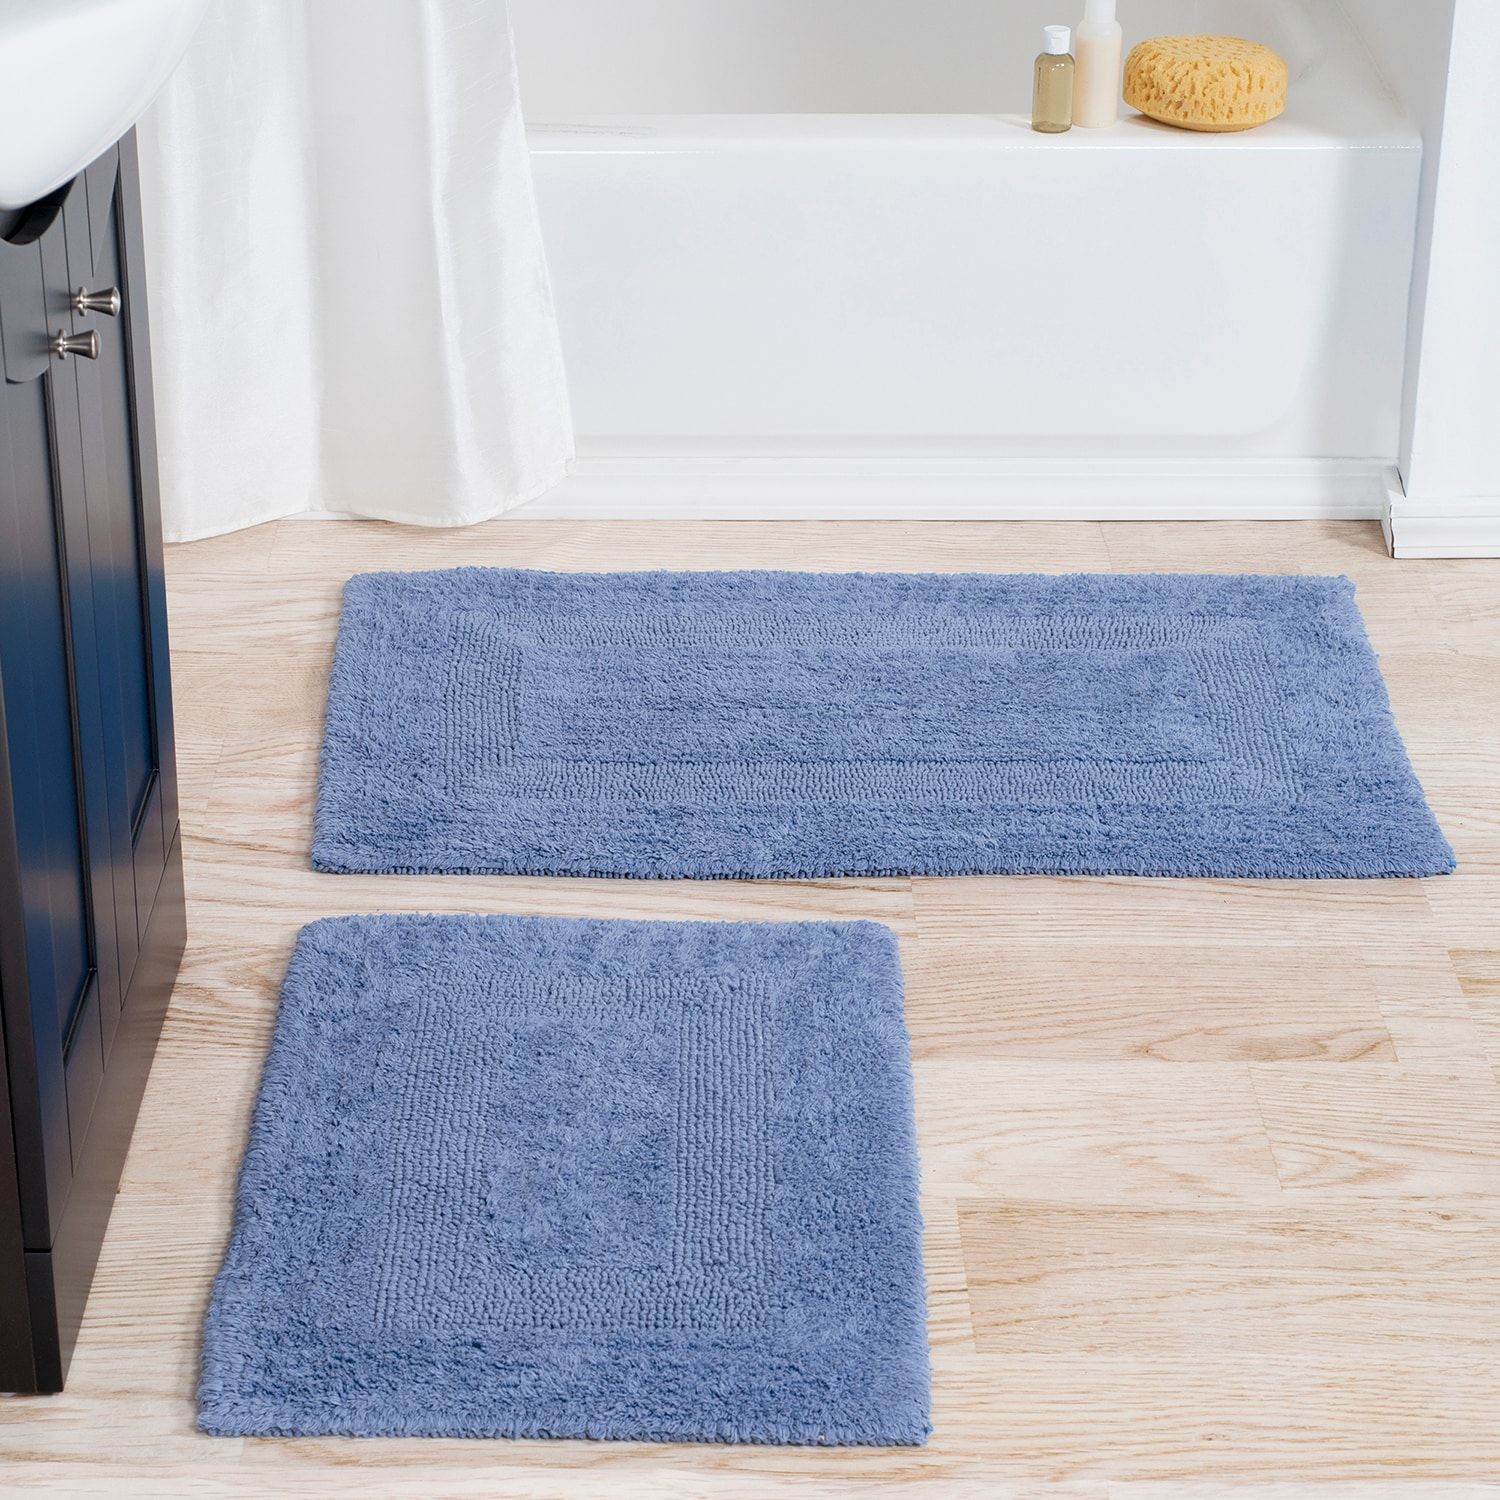 Blue Reversible Bath Rug Set Of 2 | Bath rugs, Bath and Products